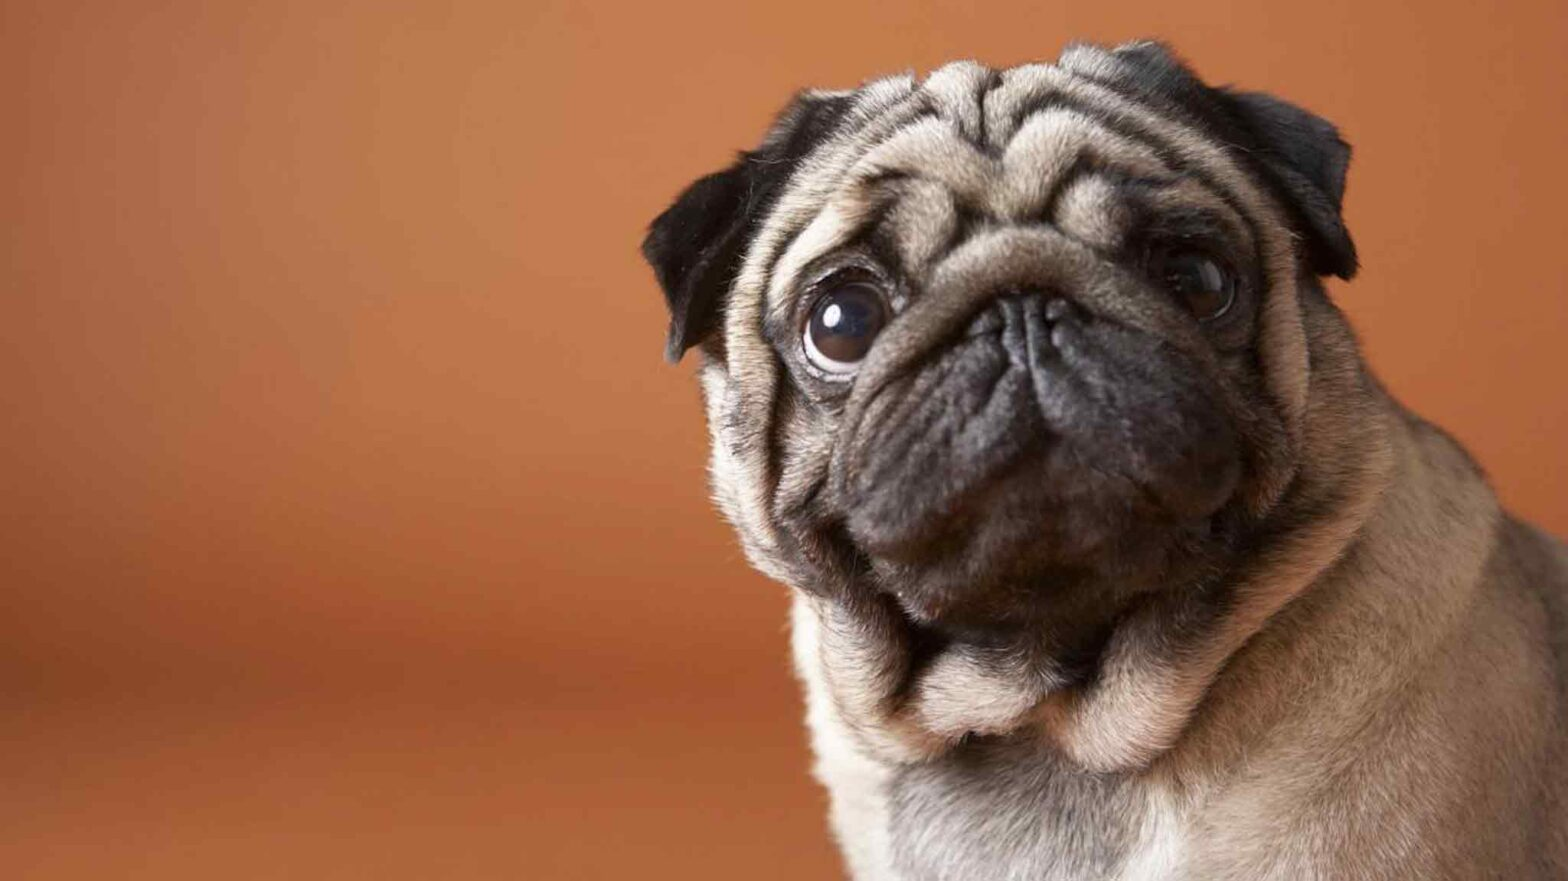 Ever Wonder Why Your Pug Stares At You All The Time?